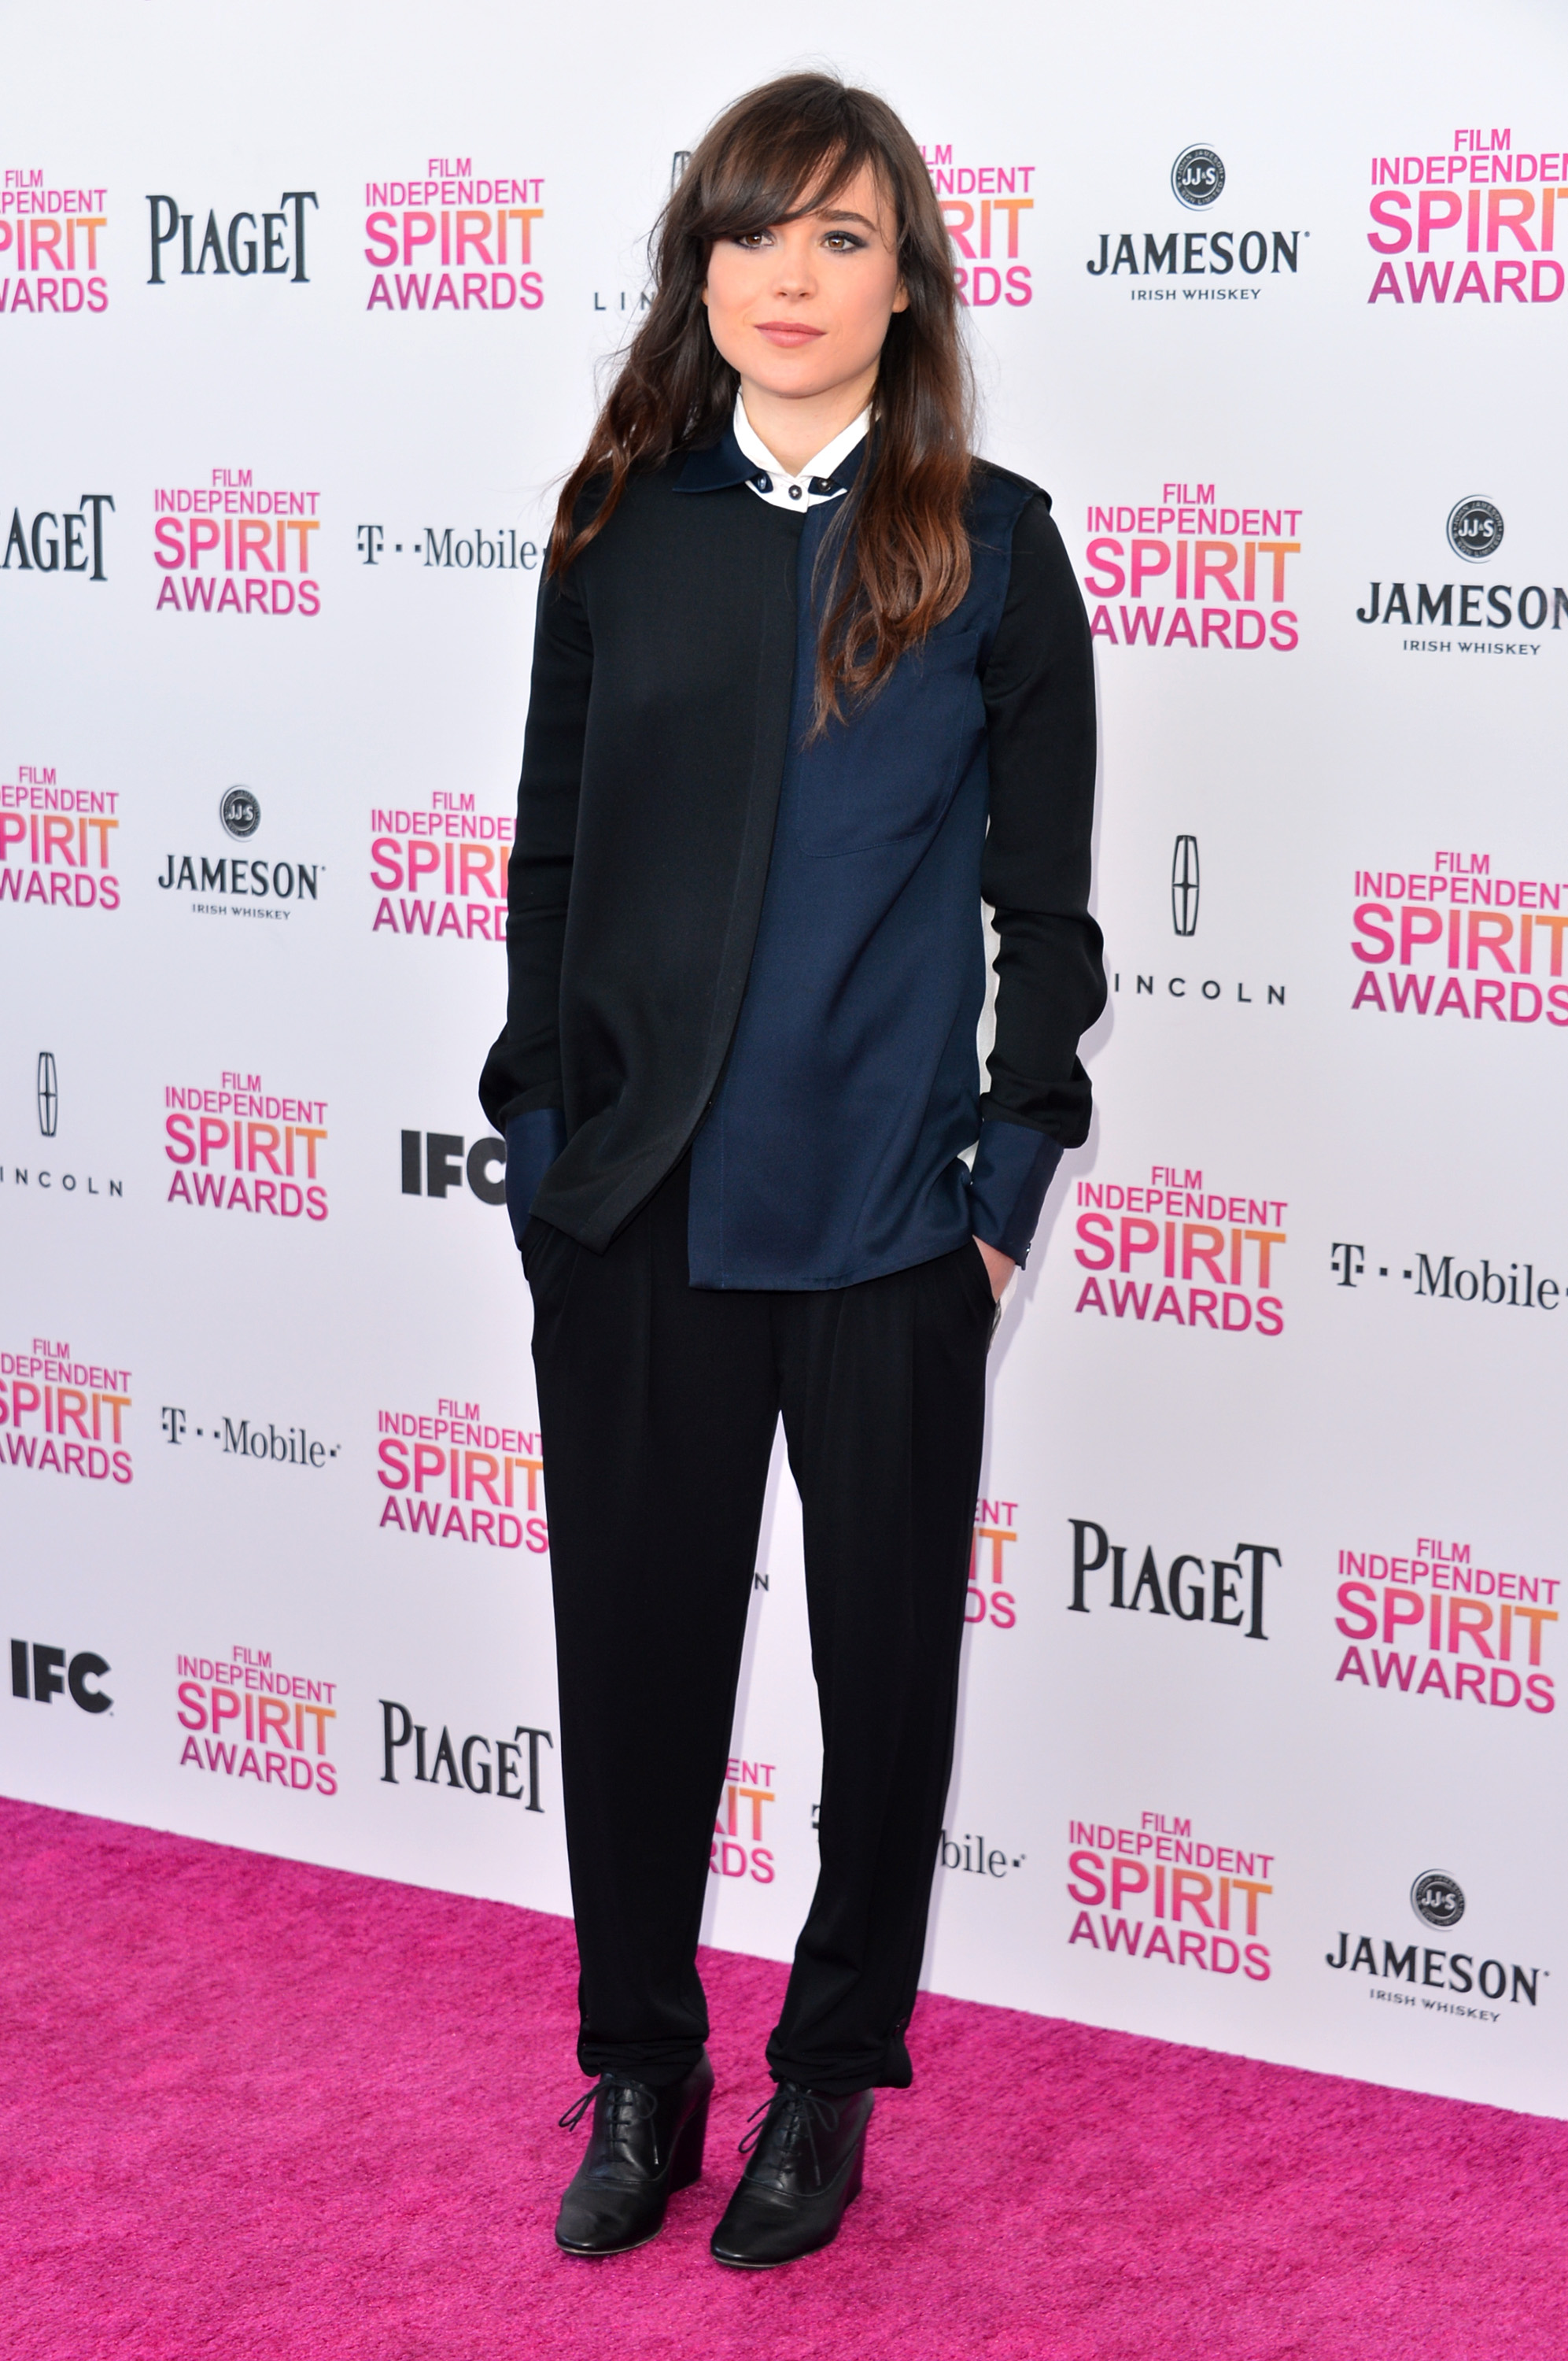 Ellen Page on the red carpet at the Spirit Awards 2013.